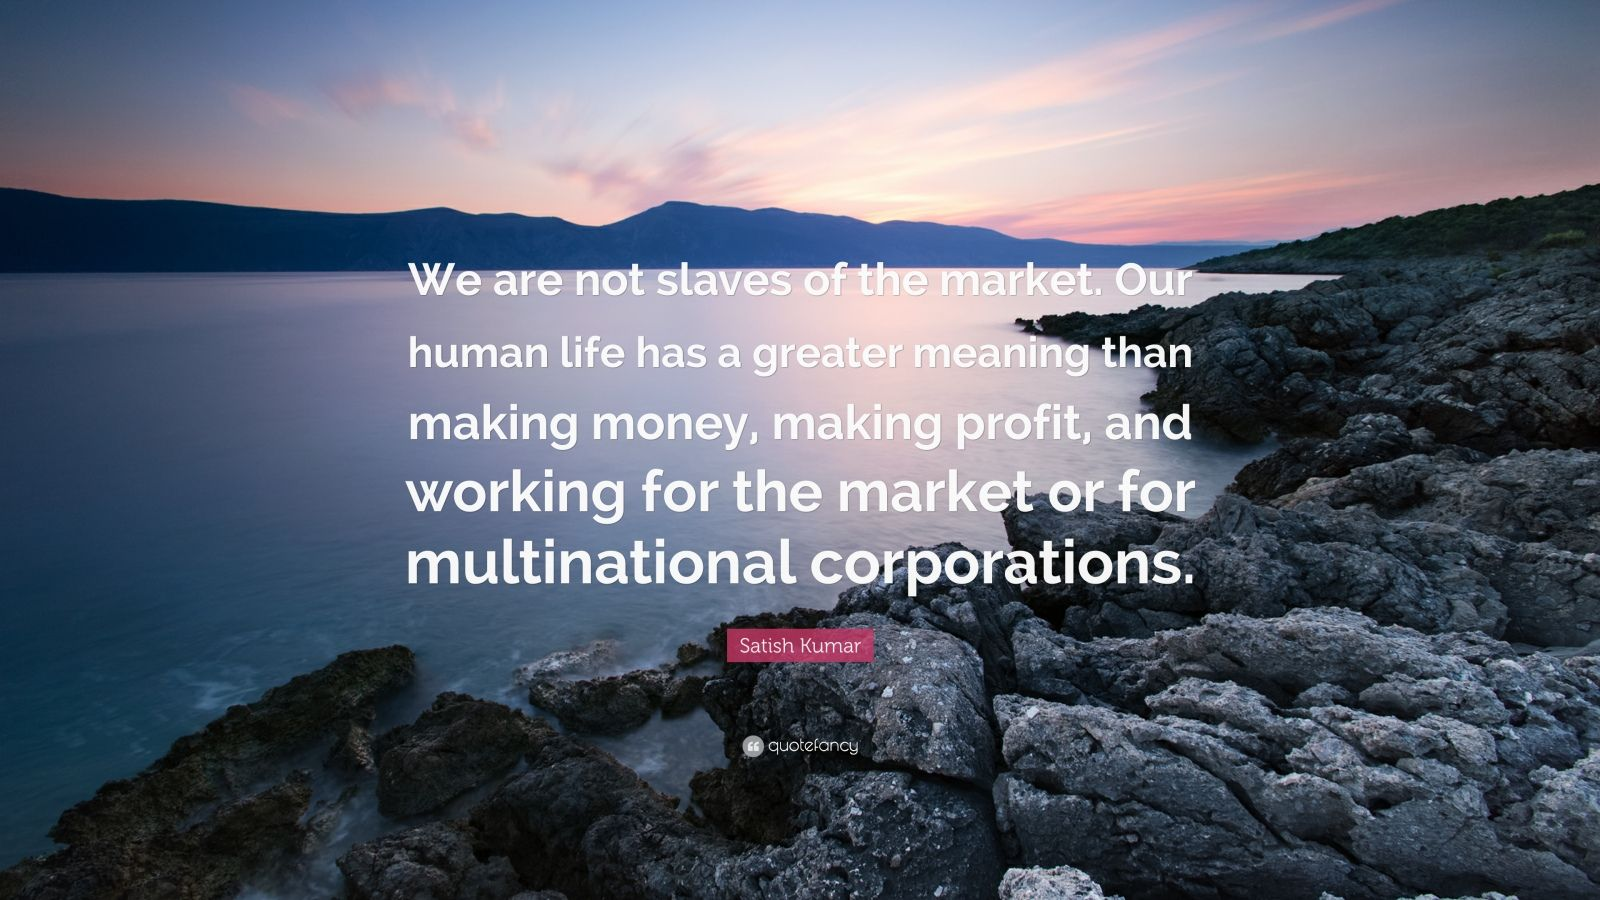 """Satish Kumar Quote: """"We are not slaves of the market. Our human life has a greater meaning than making money, making profit, and working for the market or for multinational corporations."""""""